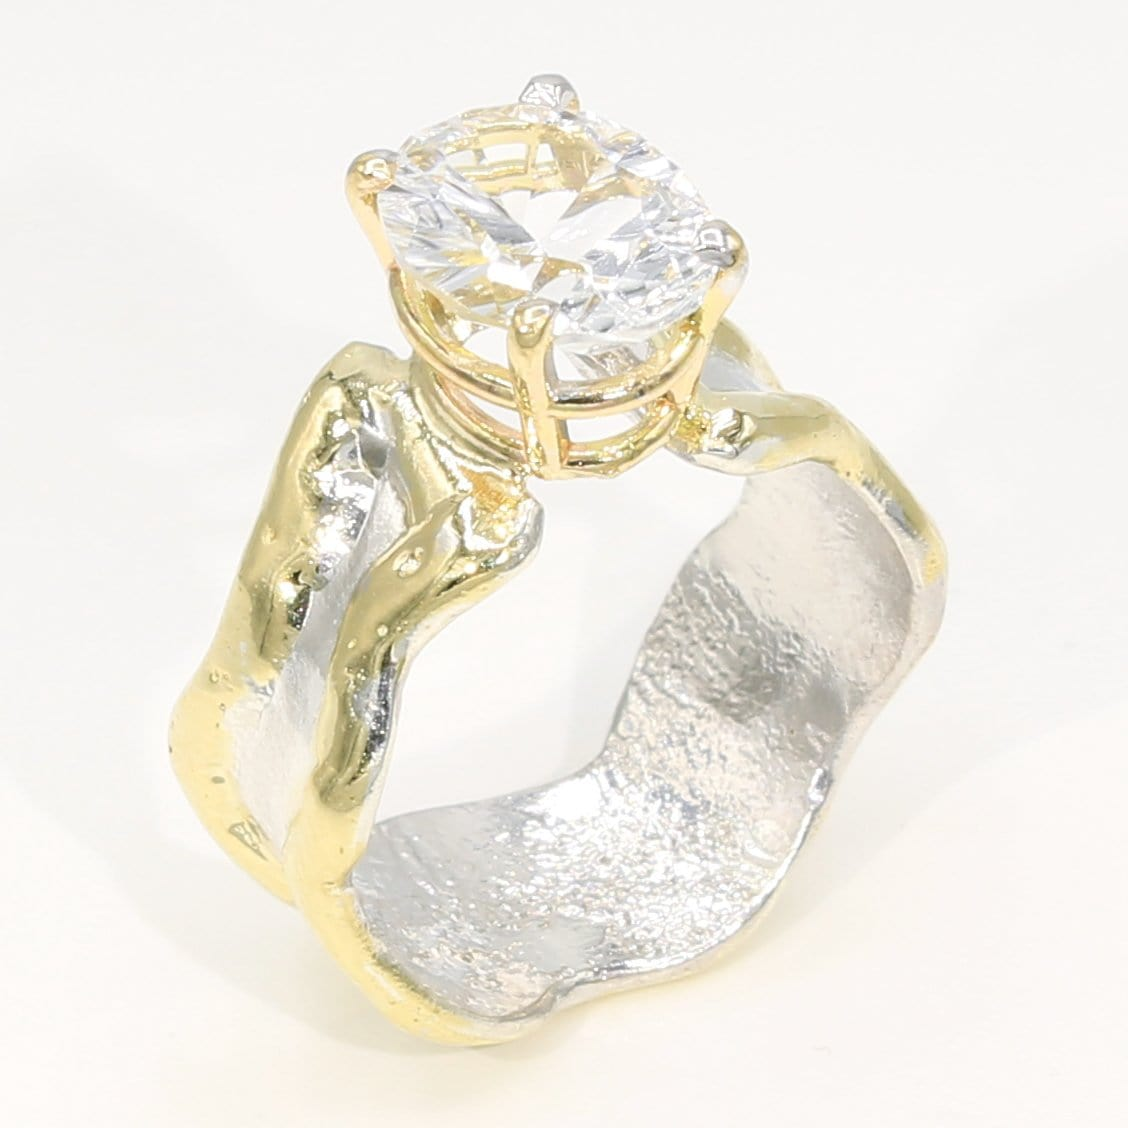 14K Gold & Crystalline Silver White Topaz Ring - 35940-Fusion Designs-Renee Taylor Gallery